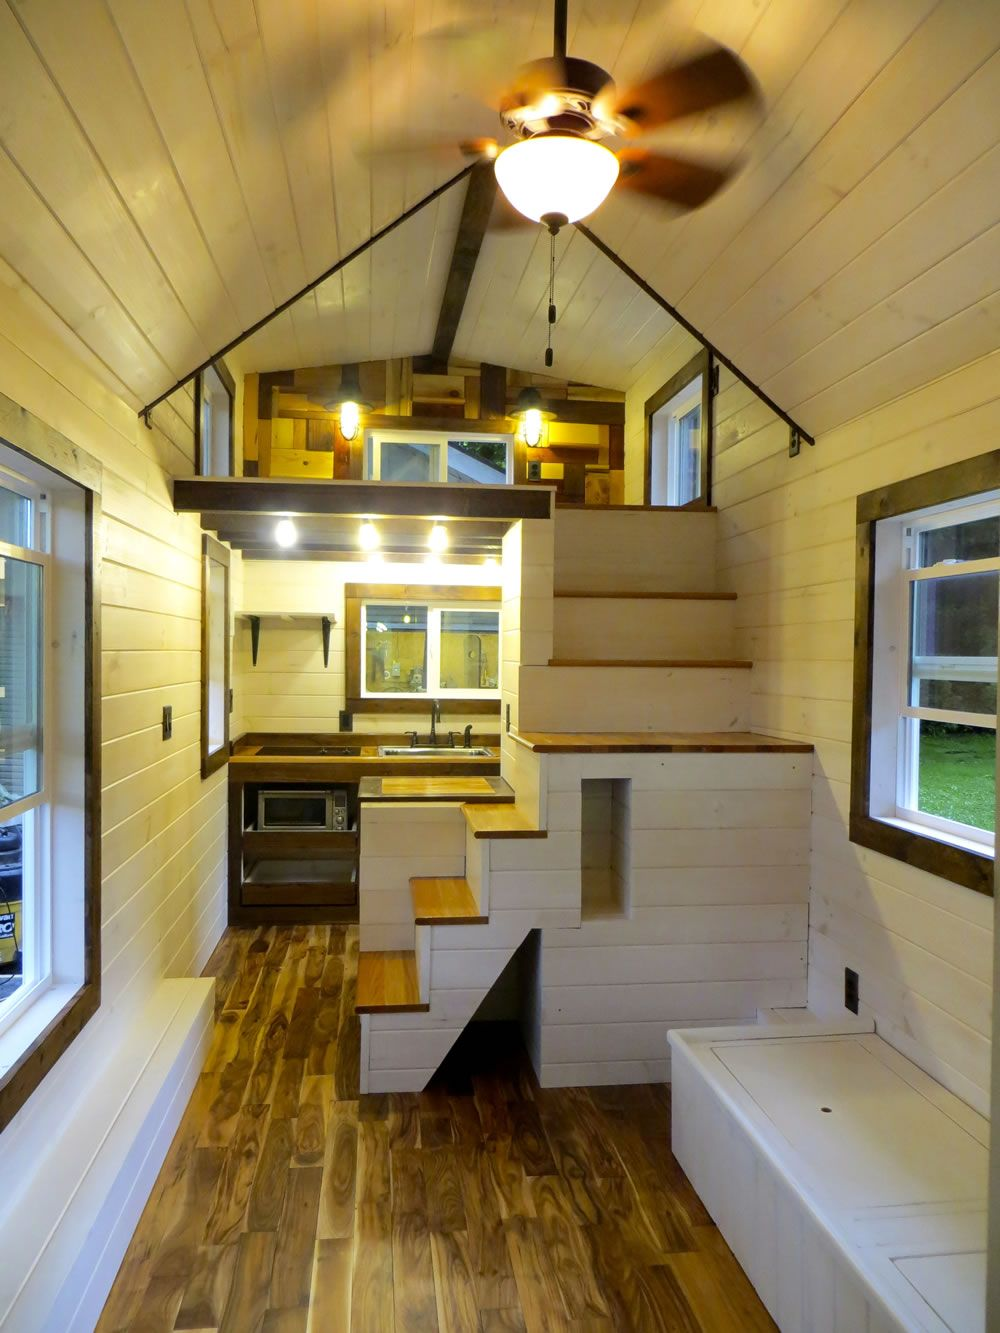 Lovely Tiny House Designs Ideas. Find Inside Best Tiny House Interior Design / Decorating  Ideas / Plans And Floor Plans, Furniture Ideas, Bathroom Ideas, Etc.